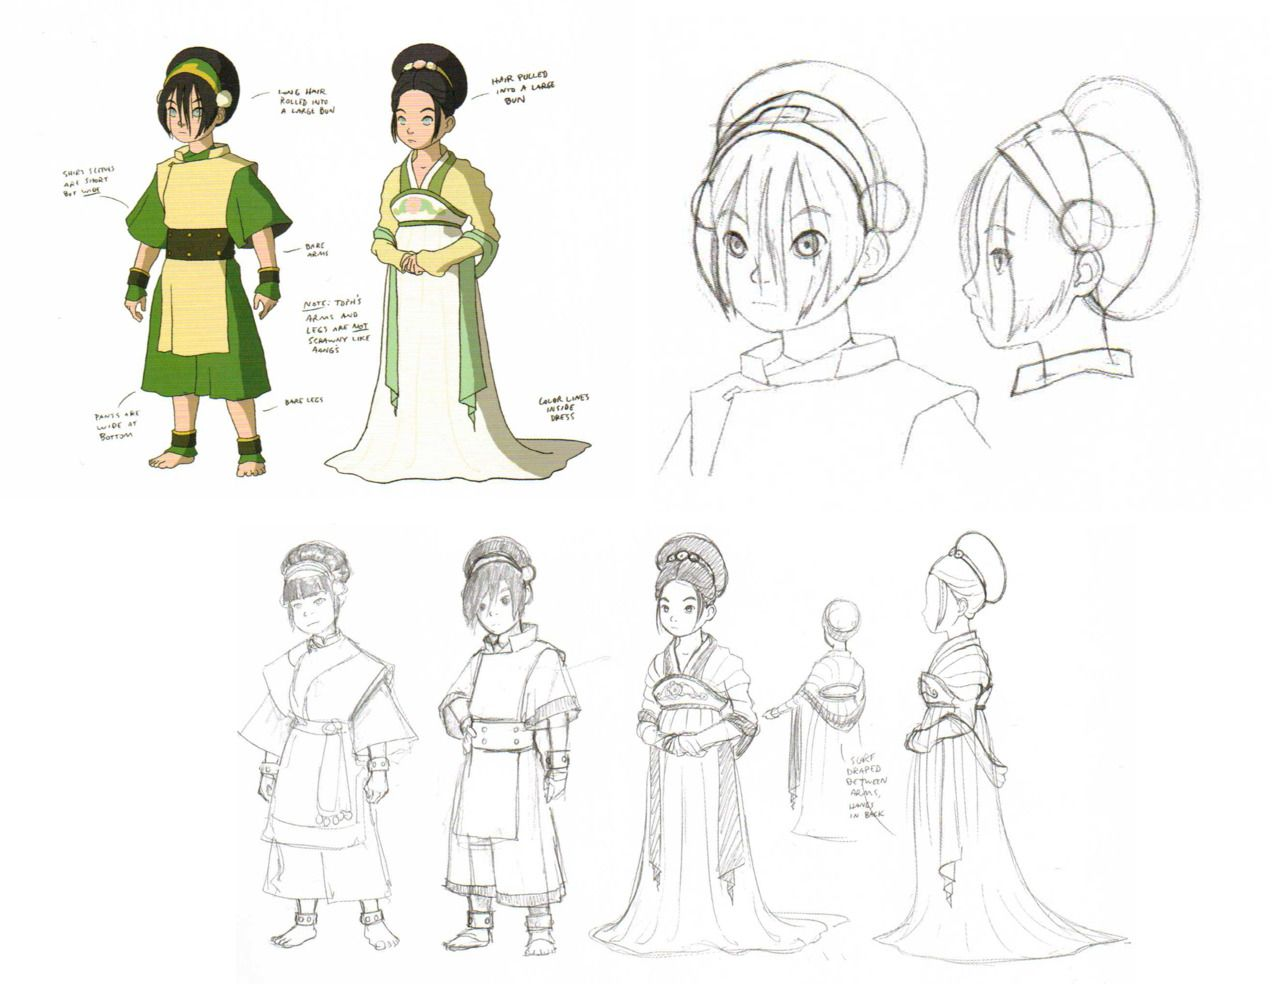 Animation Art Avatar The Last Airbender Model Sheets Avatar The Last Airbender Art Avatar Characters Avatar